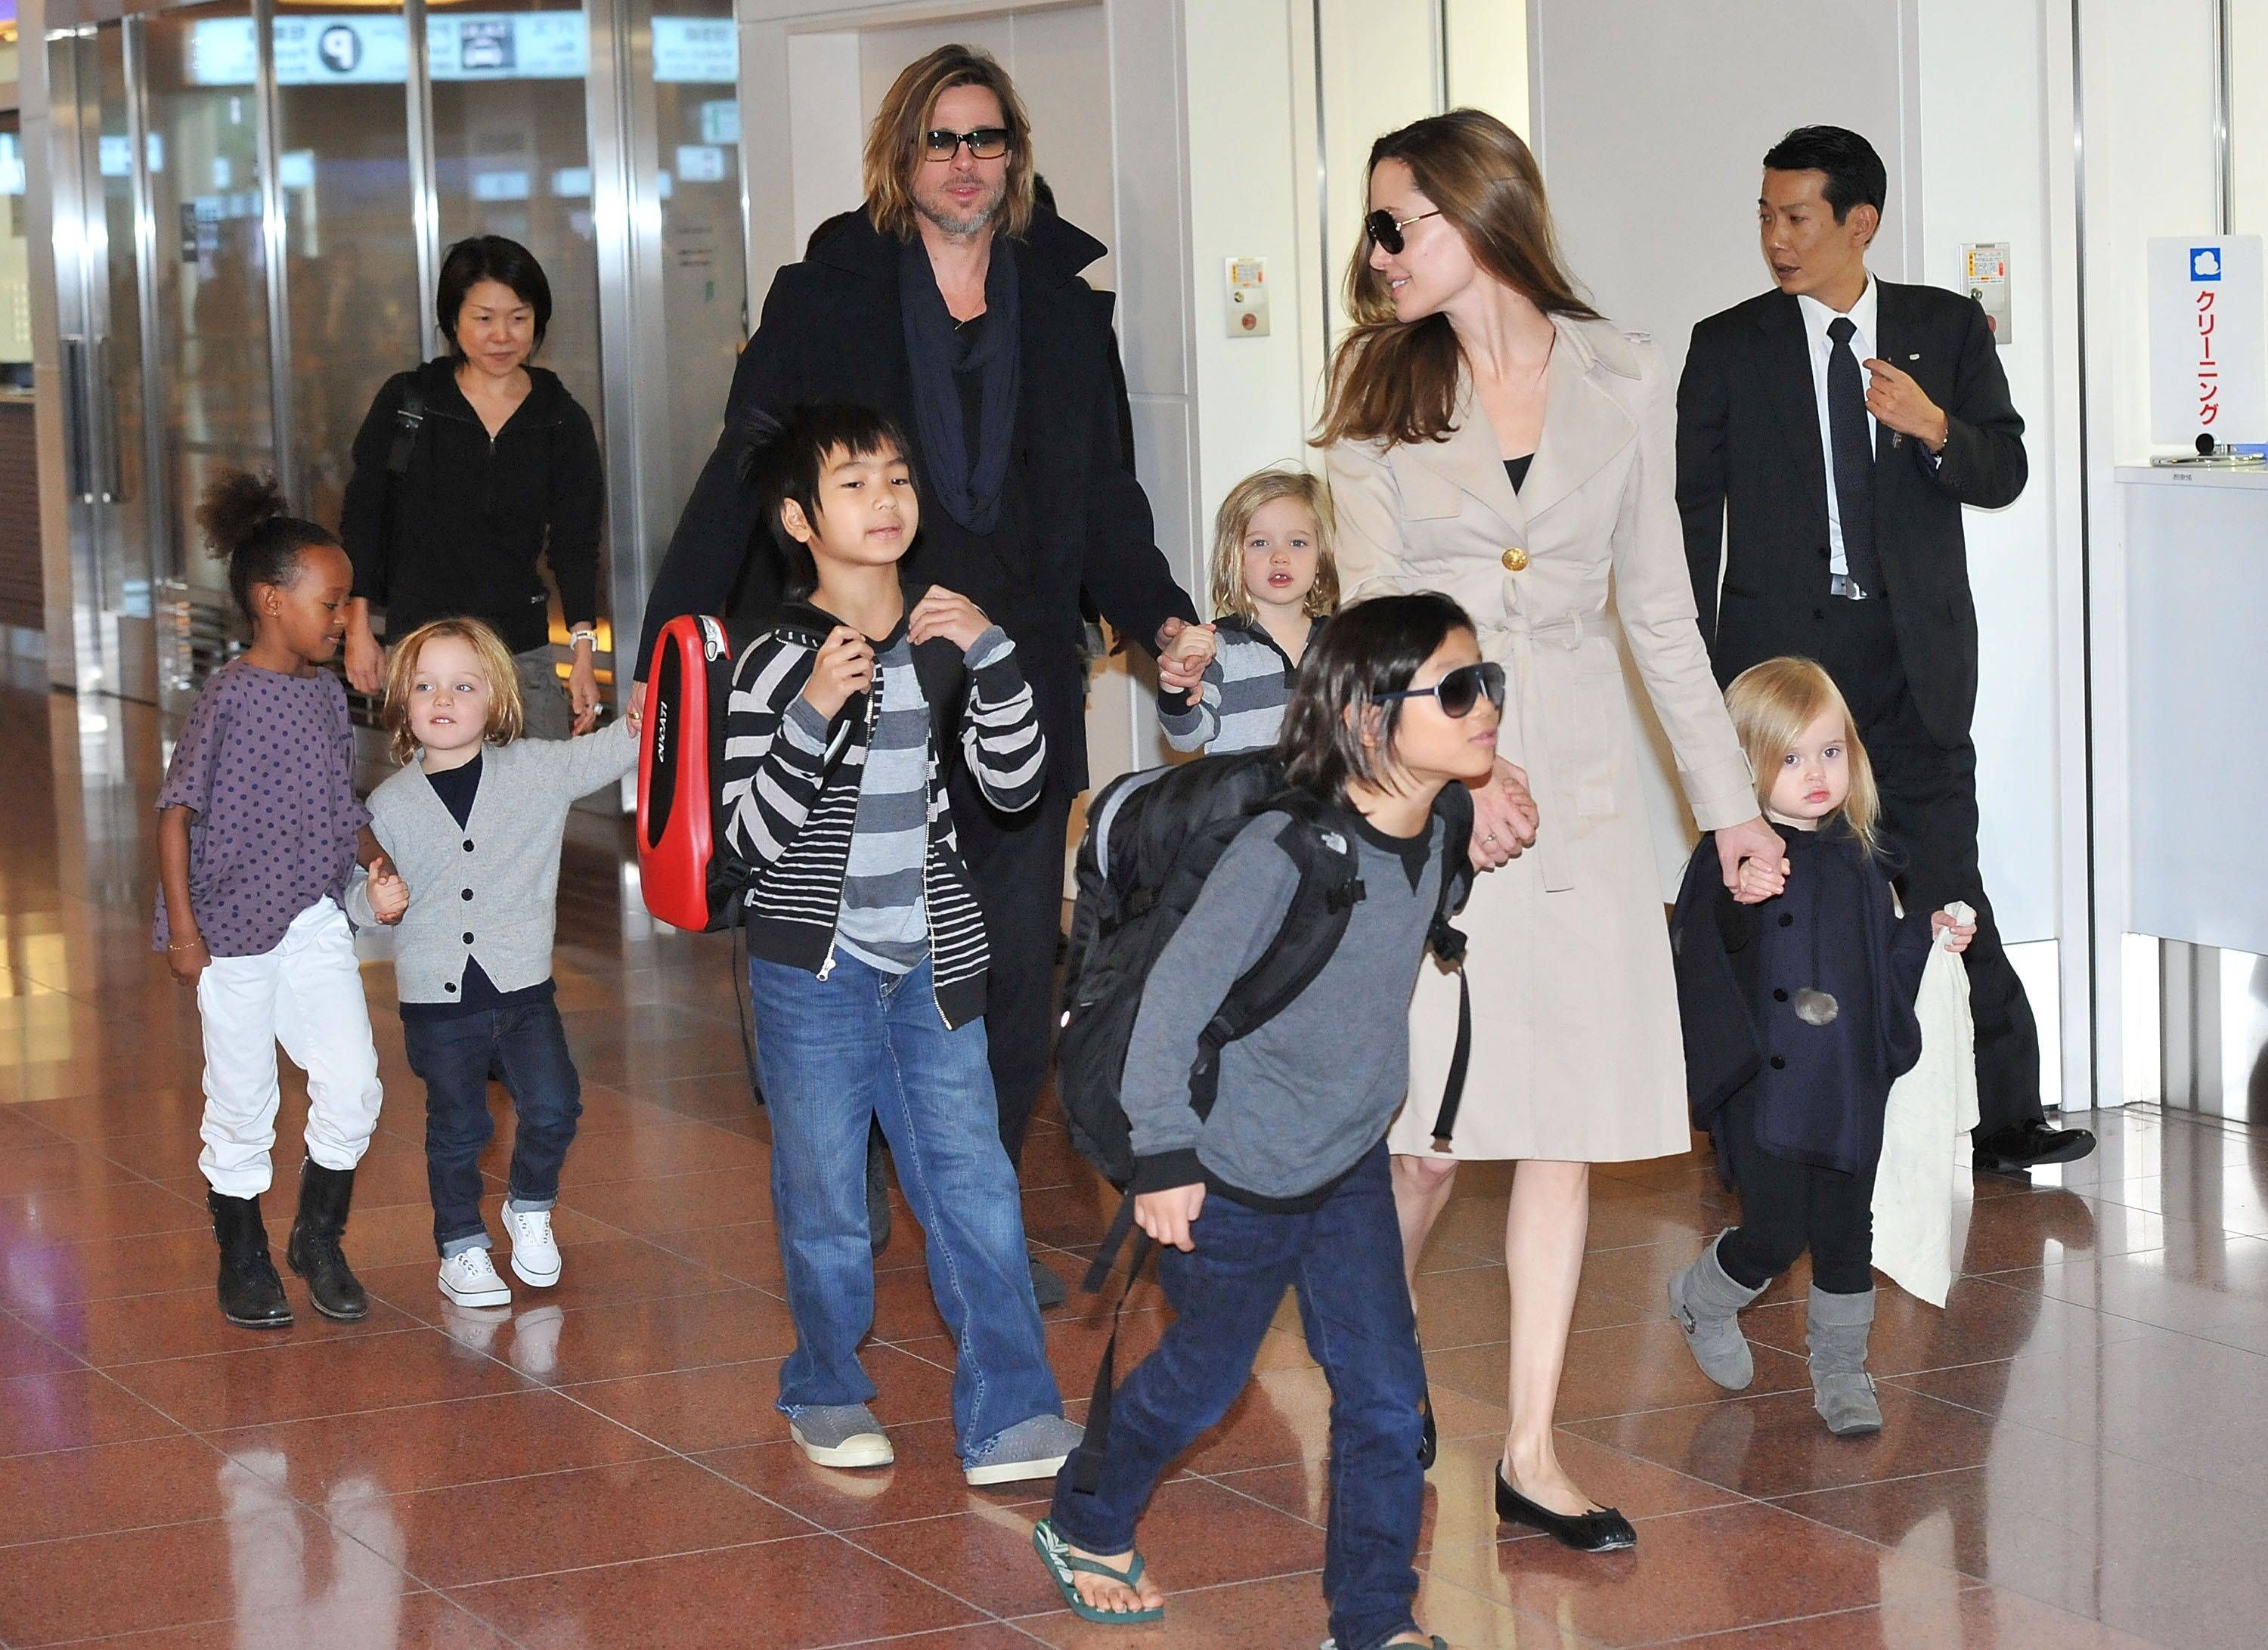 Brad Pitt, Angelina Jolie and their six children Maddox, Pax, Zahara, Shiloh, Knox, and Vivienne arrive at Haneda International Airport on November 8 in Tokyo, Japan on November 08, 2011. | Photo: Getty Images